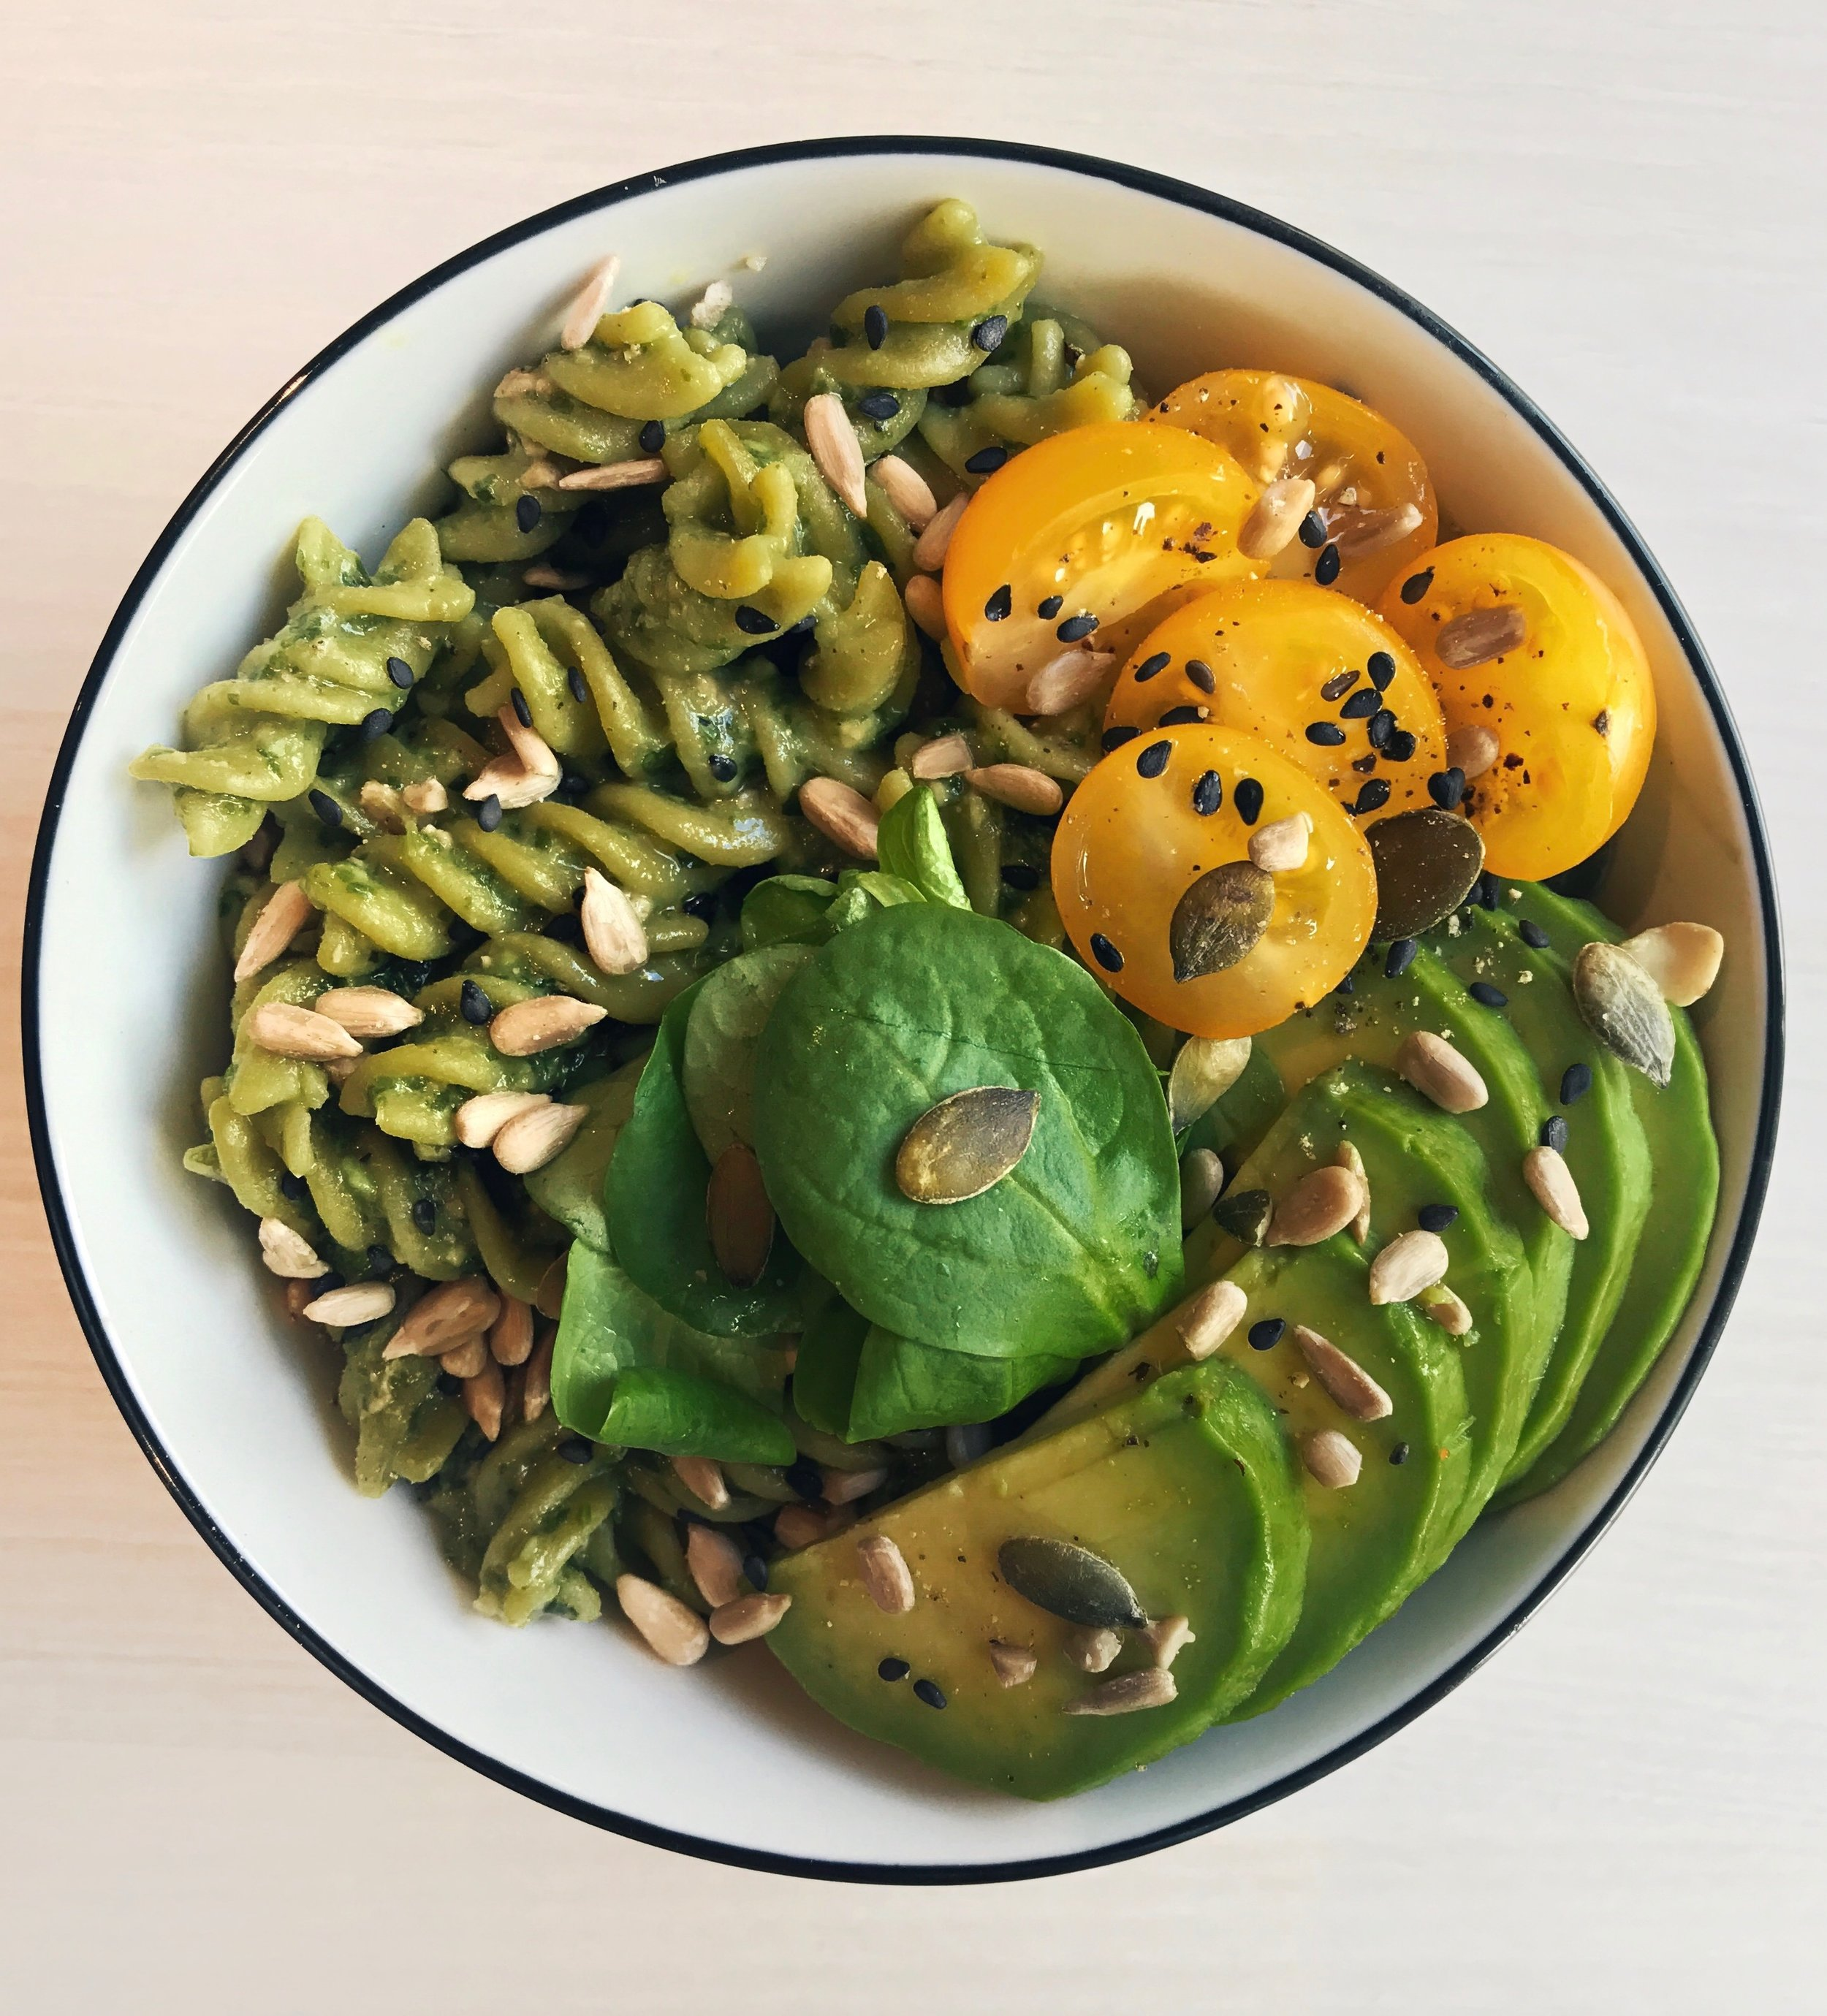 Creamy Avocado Pesto & Basil Pasta - For the sauce:- 1 cup basil-1 avocado-1 clove garlic (or sub with powder)-1/4 cup pine nuts-1/3 cup olive oil- A handful of cilantro- Salt/pepper to tasteMix all the ingredients together and blend until you get the desired consistency.Pour over pastas, stir a bit and top with nuts/seeds, avocado and cherry tomatoes.